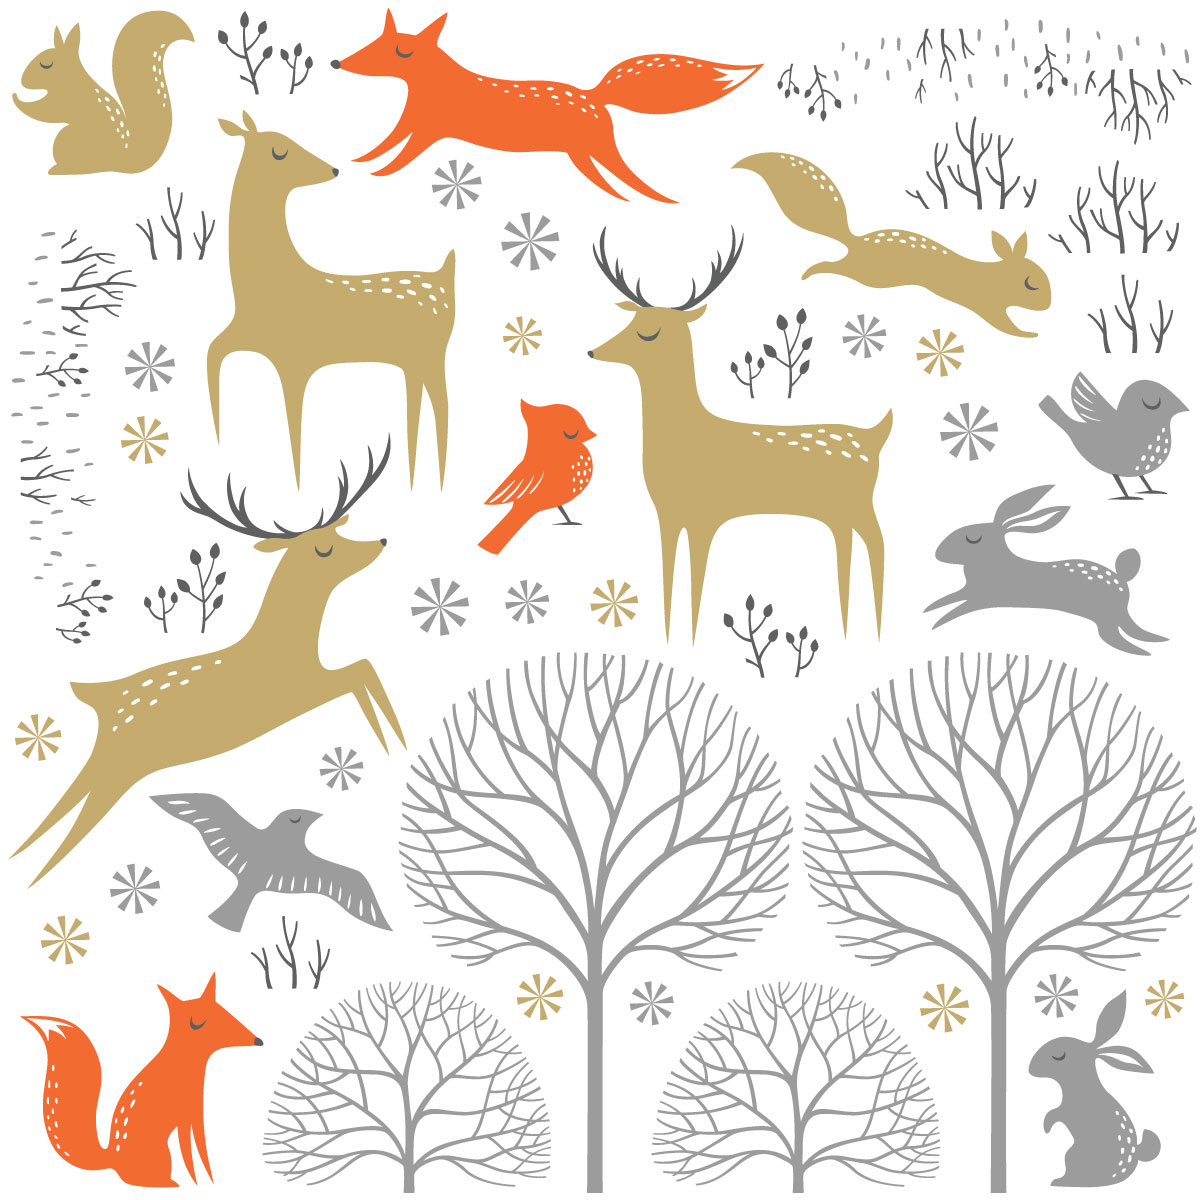 Bois d automne clipart vector freeuse library Stickers animaux des bois d\'automne vector freeuse library